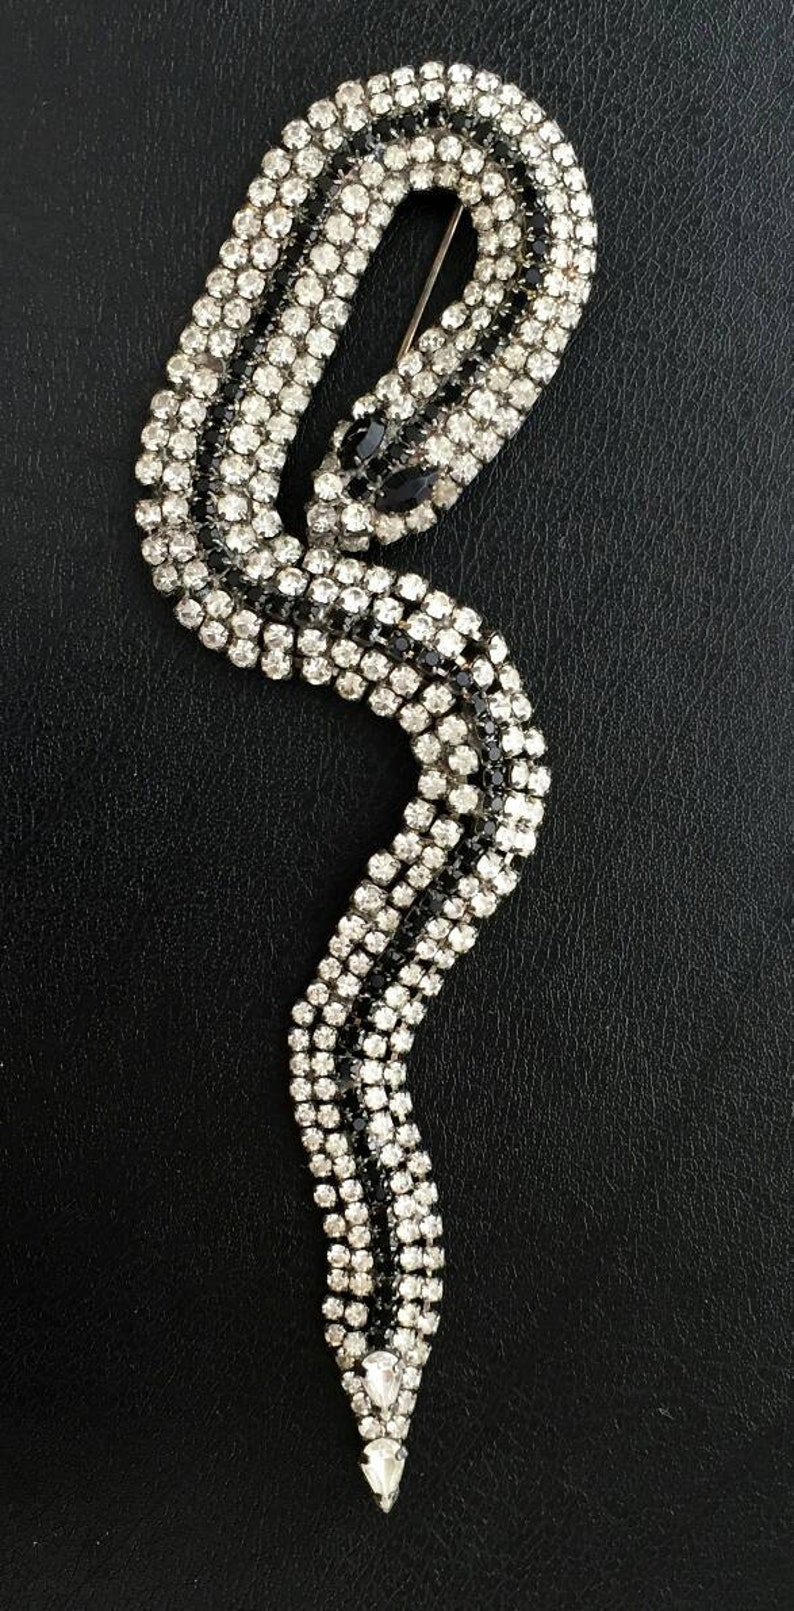 Long snake serpent figural black n clear Rhinestone BROOCH PIN Silvertone lapel animal Couture Style statement Designer quality rare vintage